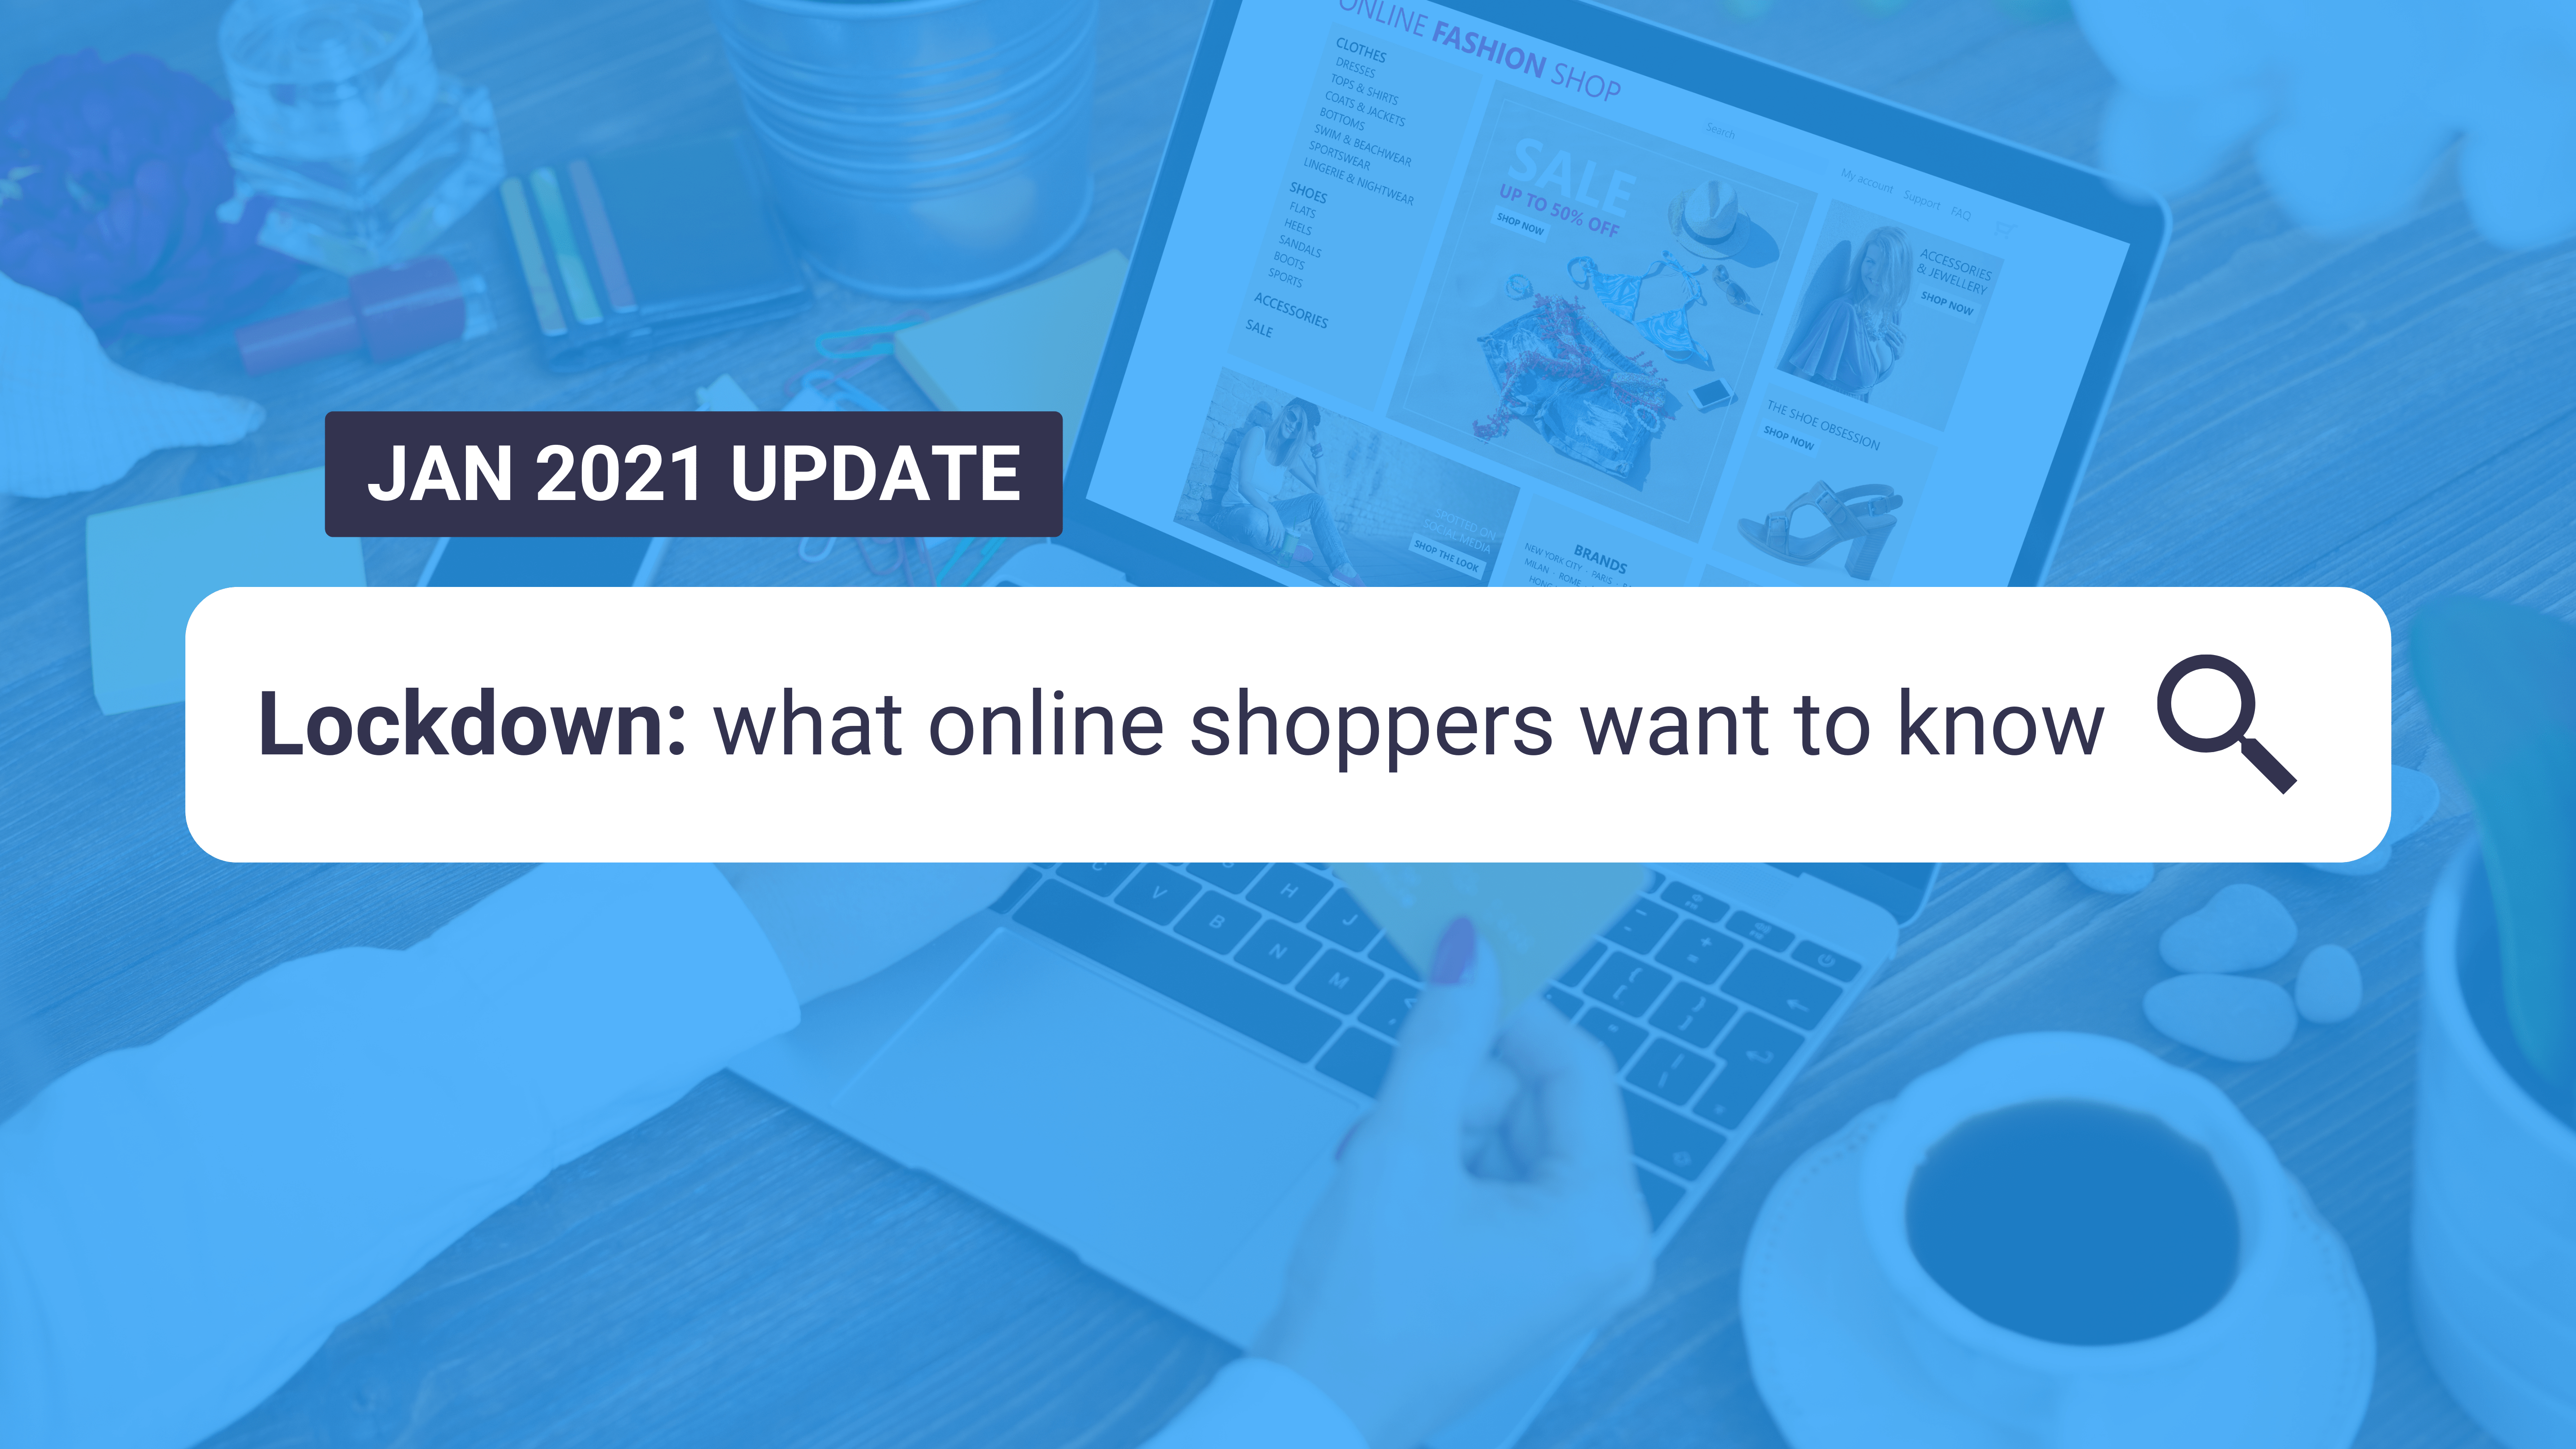 January lockdown: what online shoppers want to know